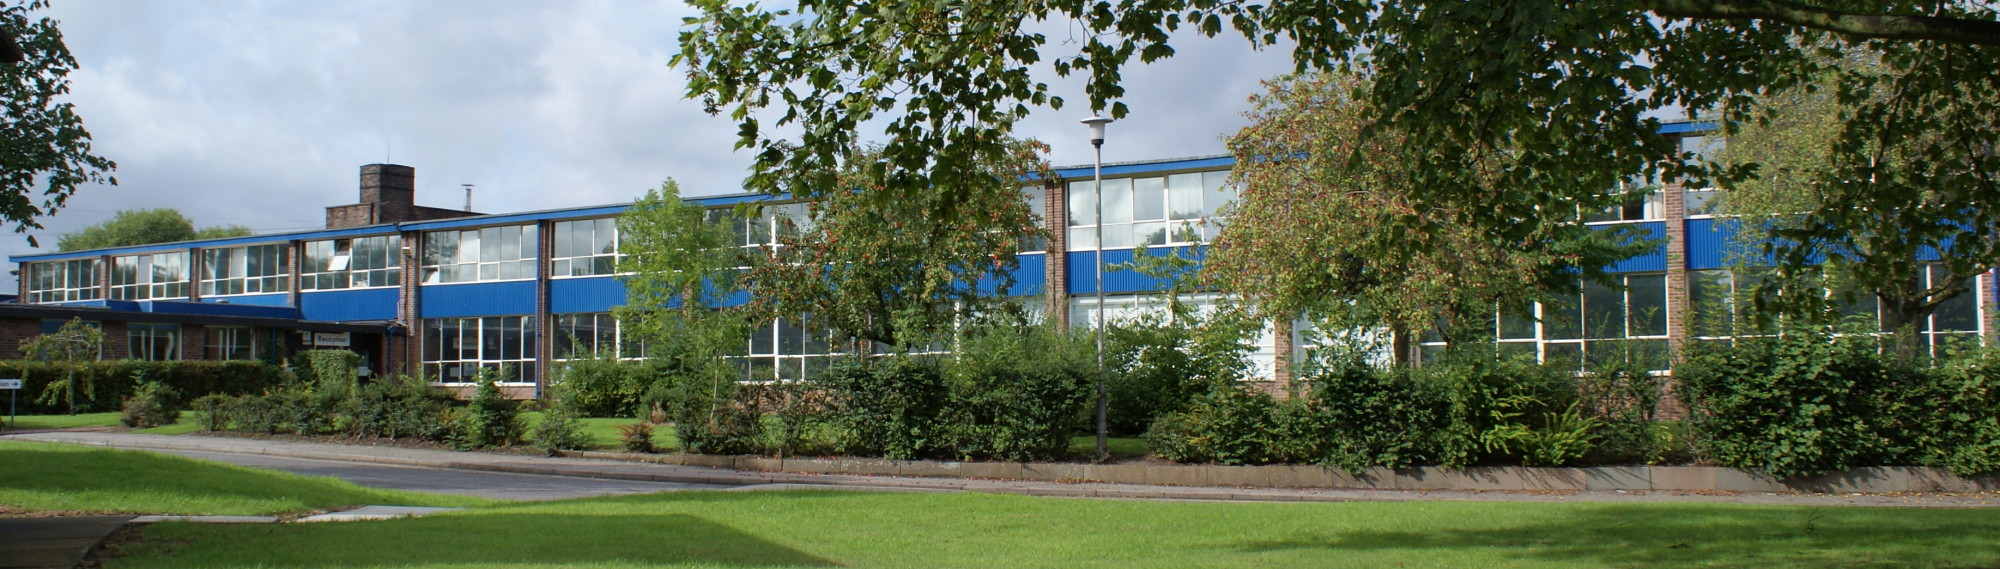 Woolston Community High School